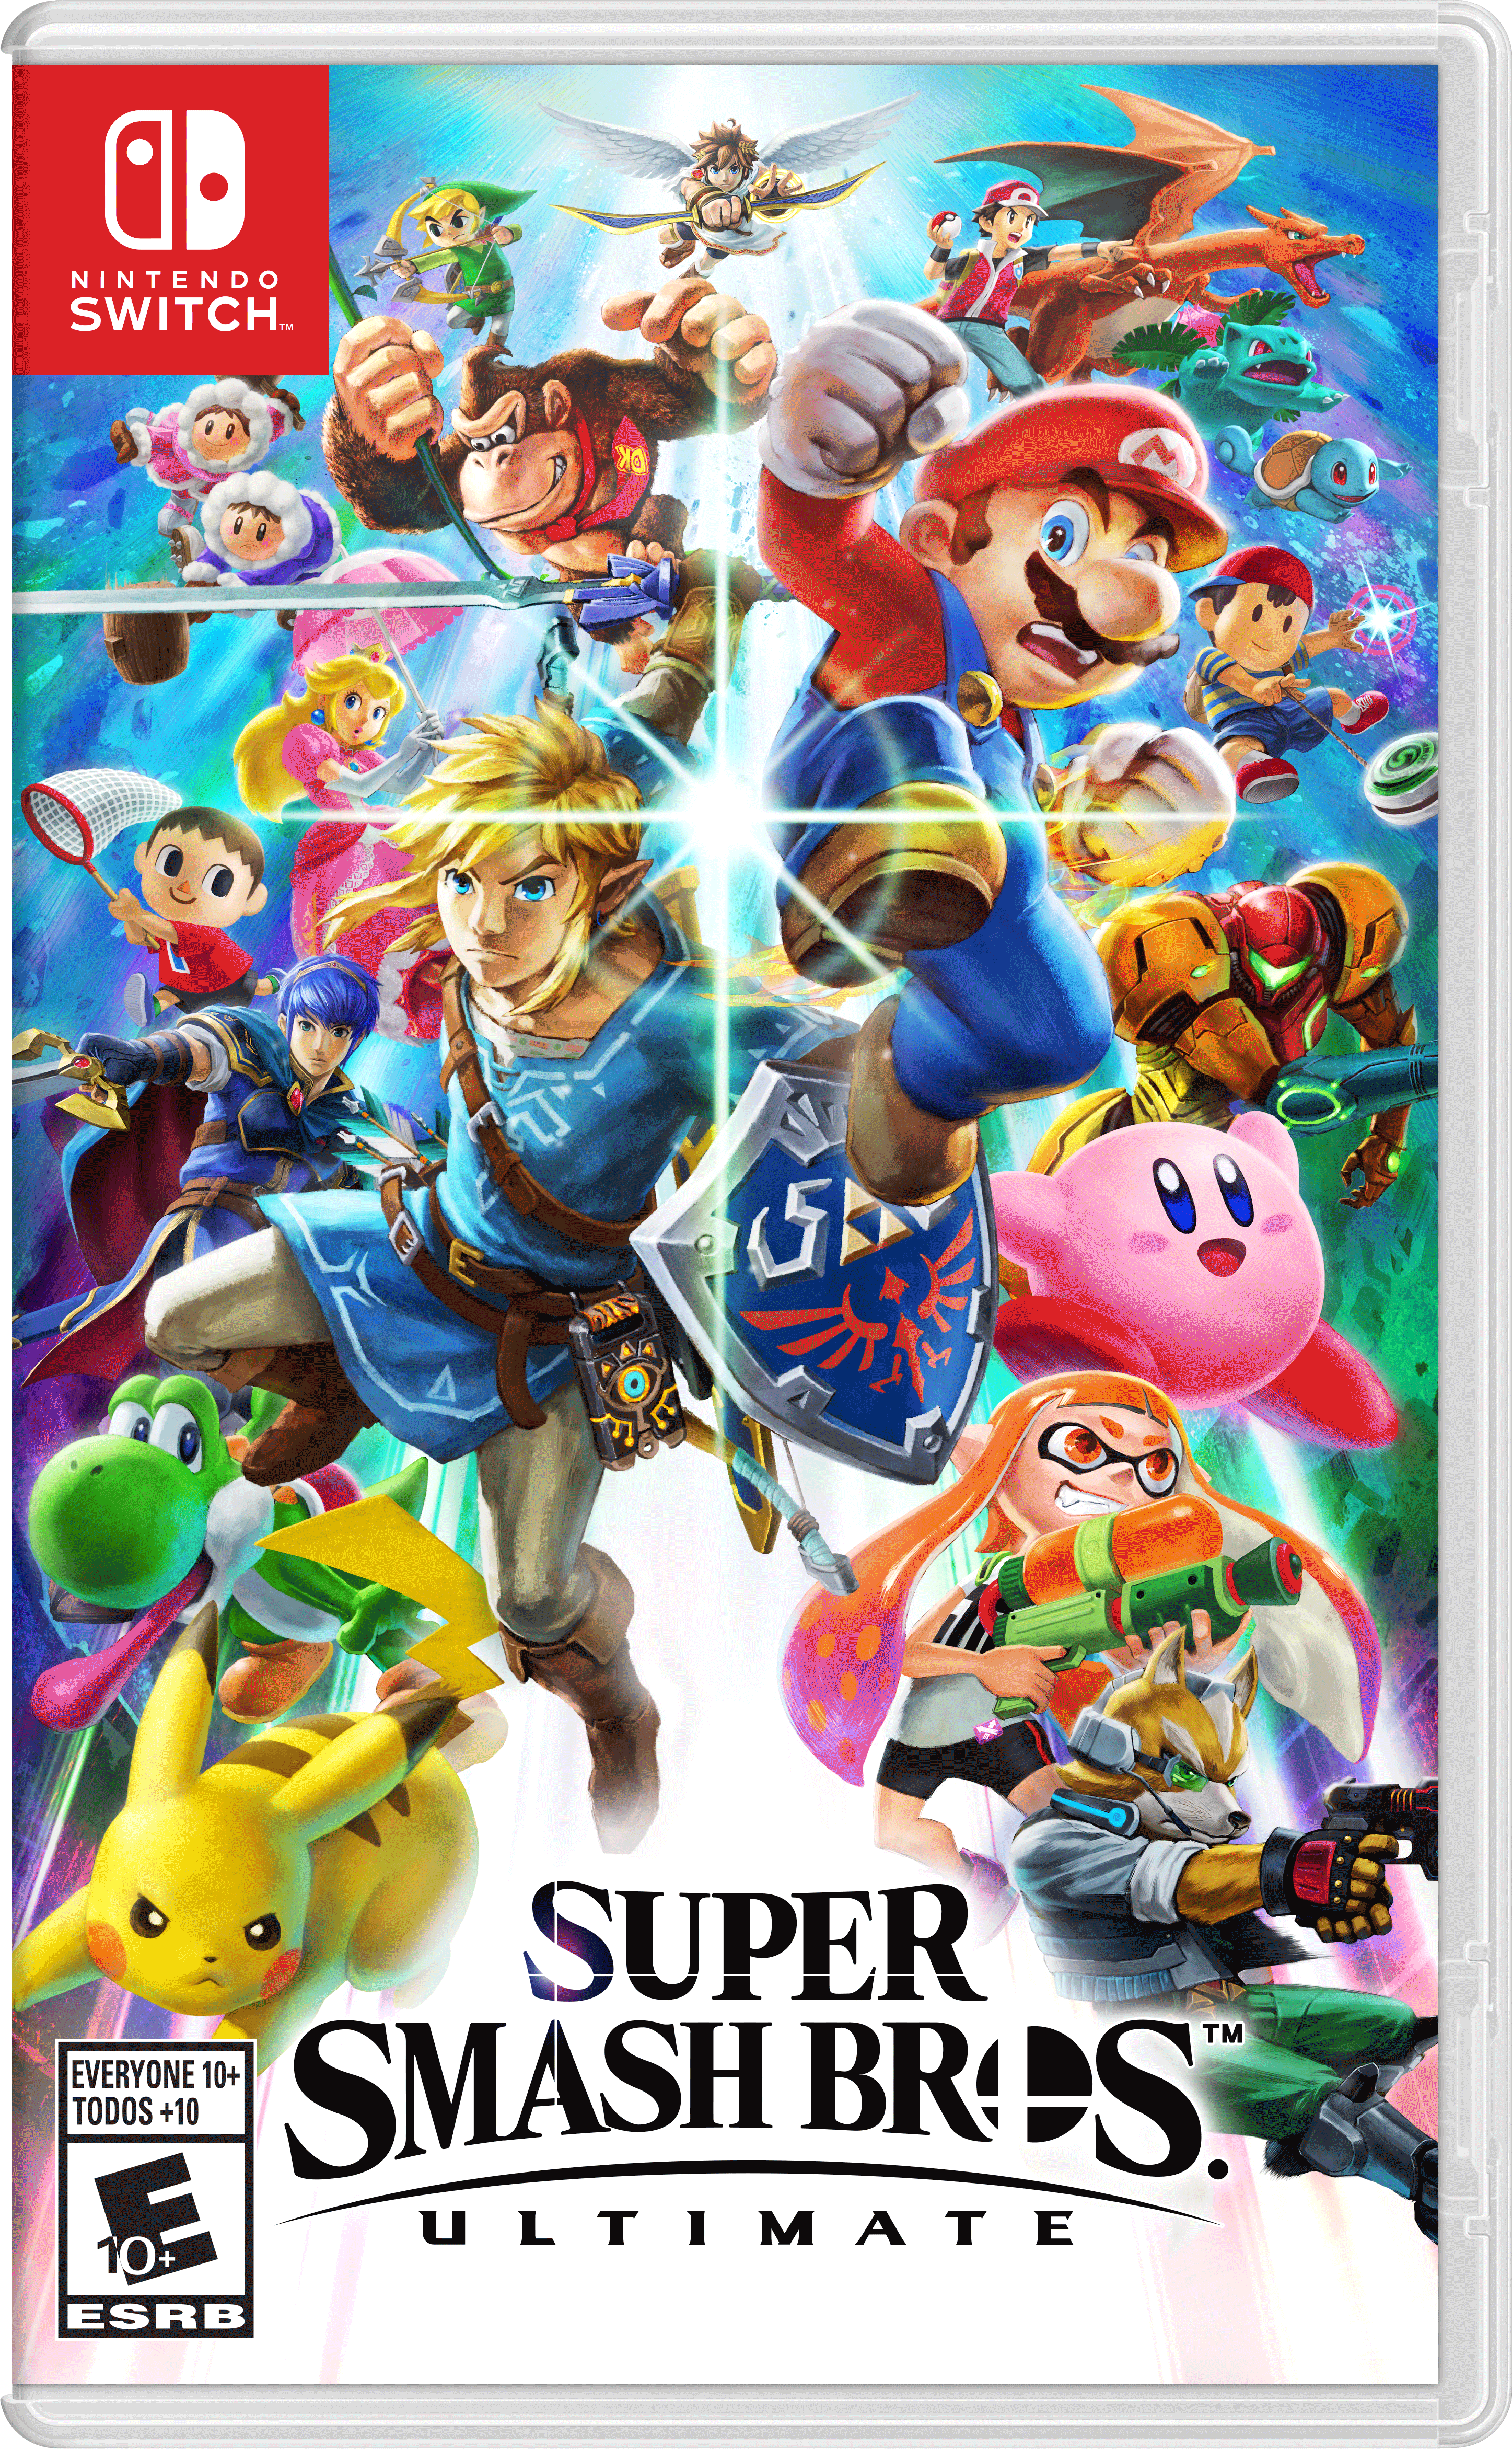 Boxart for Super Smash Bros. Ultimate